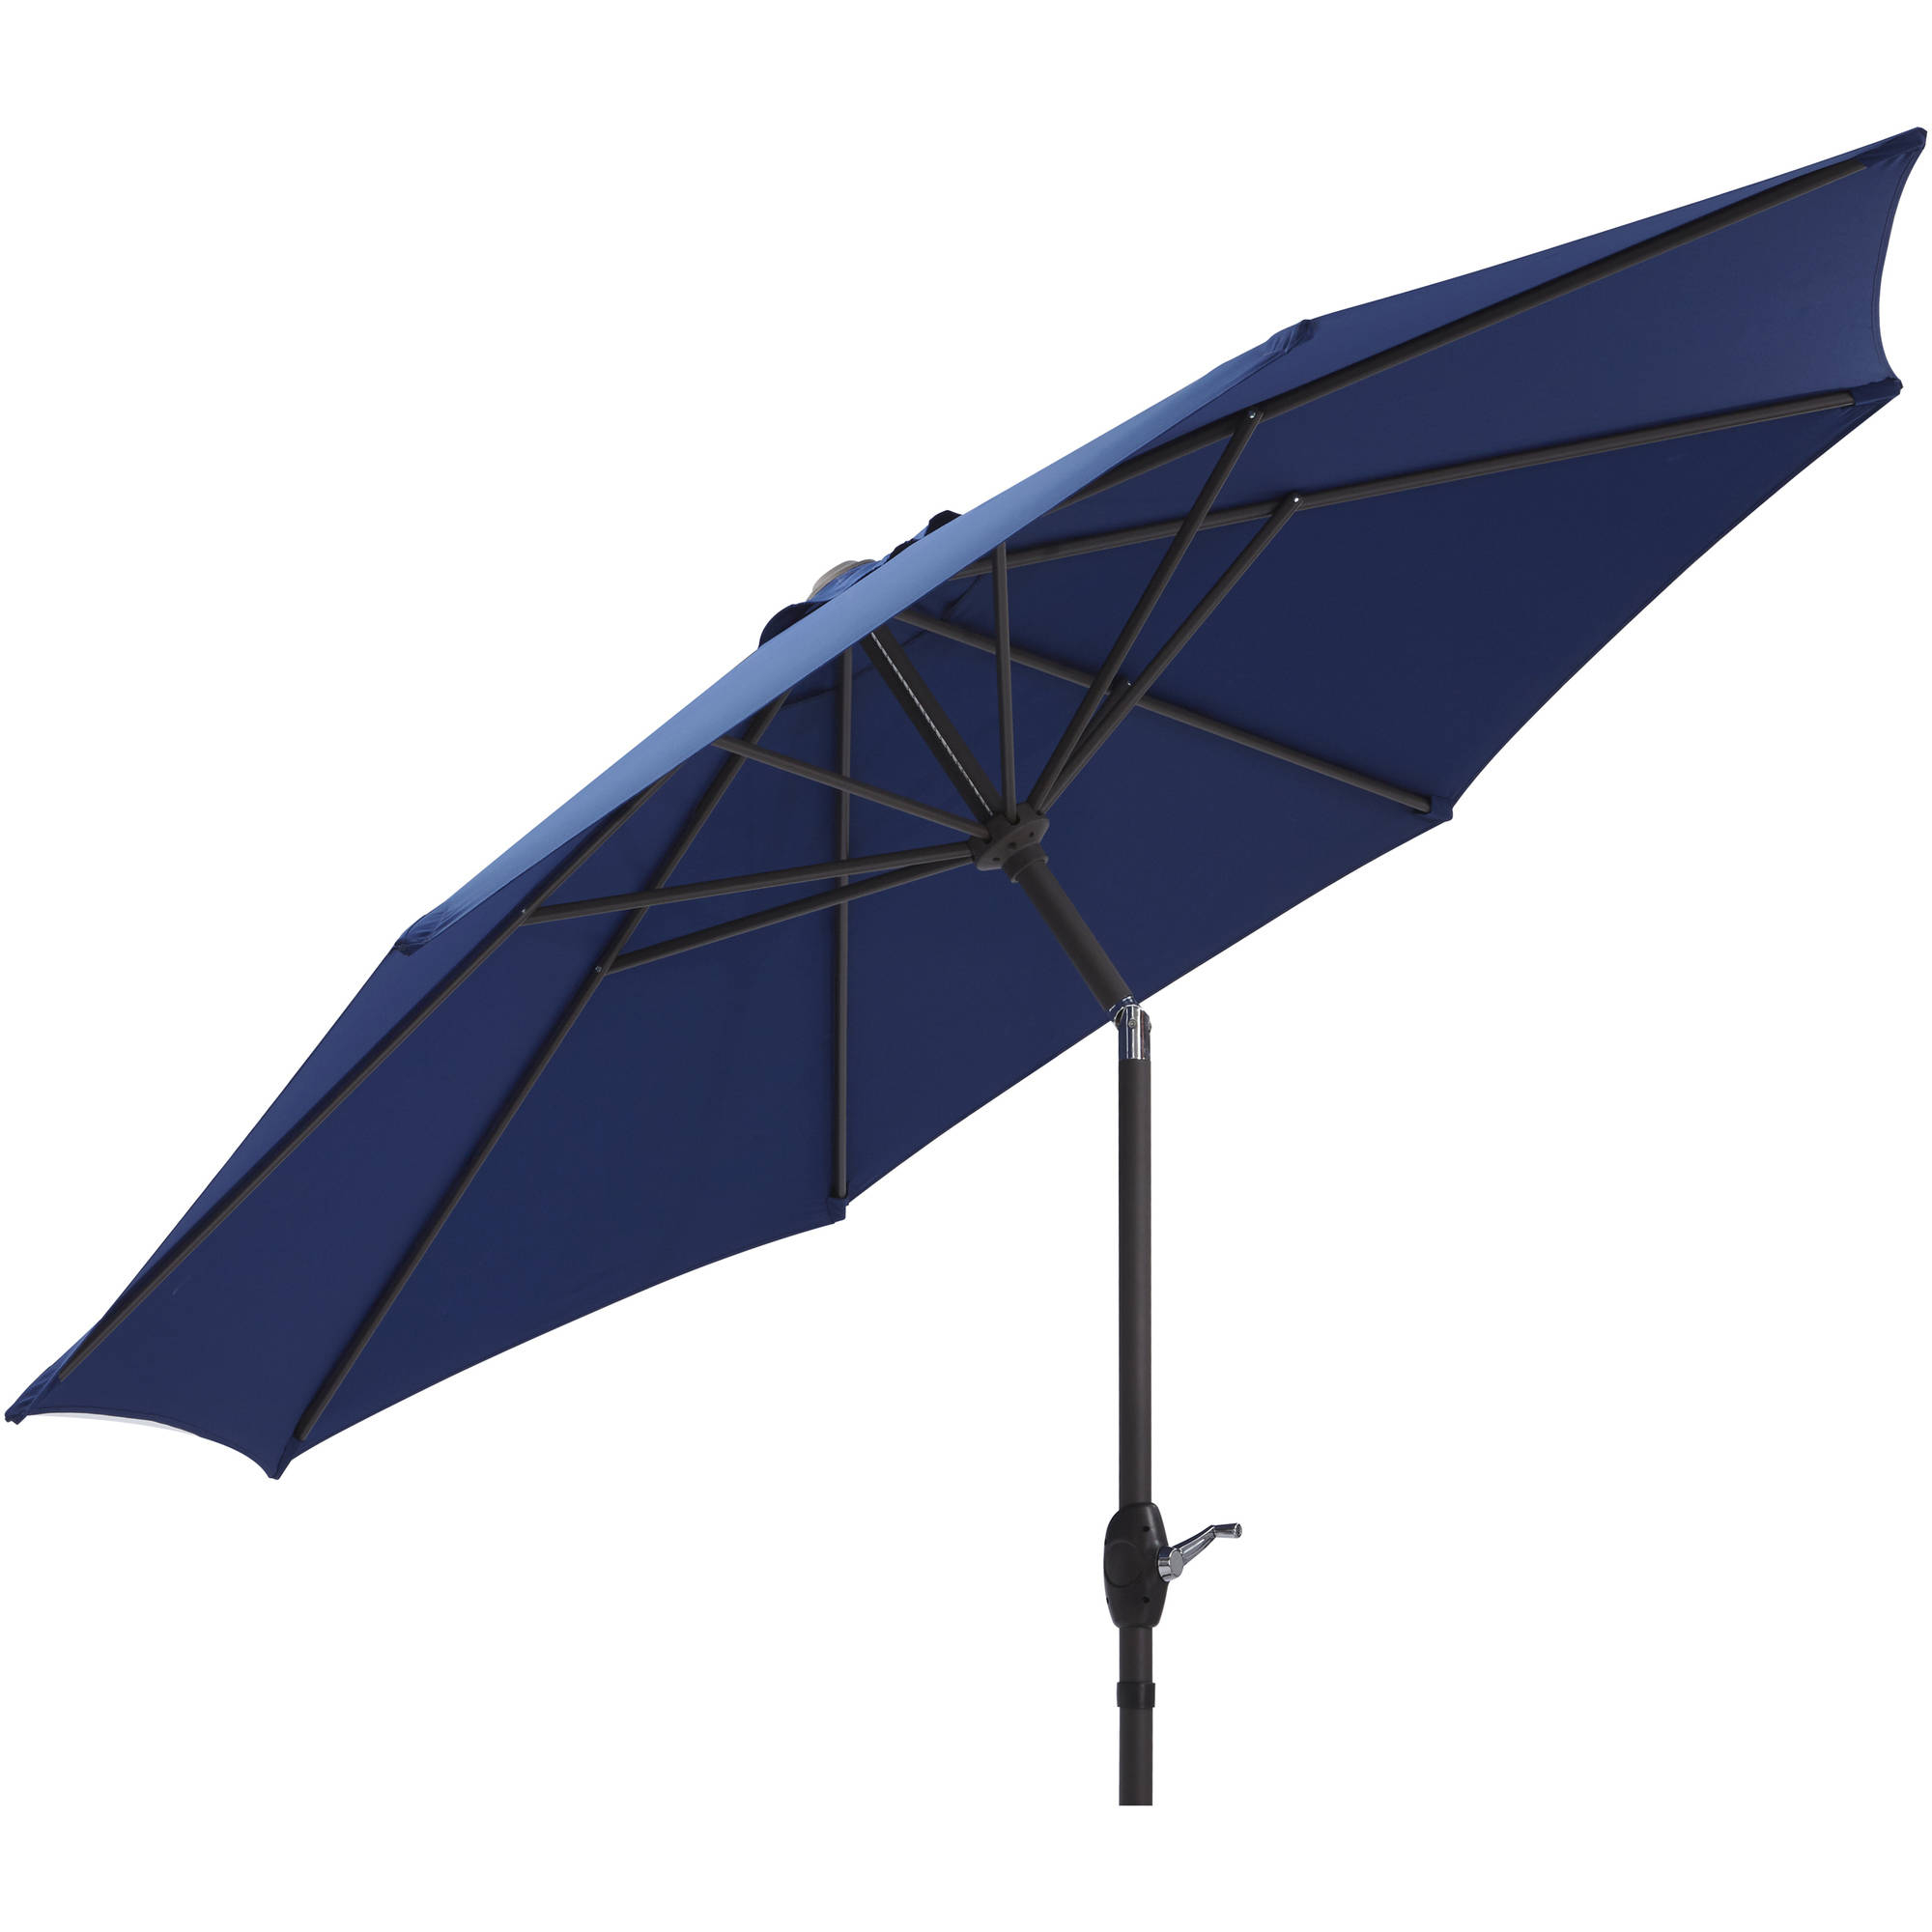 Mainstays 9' Market Umbrella, Navy Blue With Brown Frame For Best And Newest New Haven Market Umbrellas (Gallery 15 of 20)